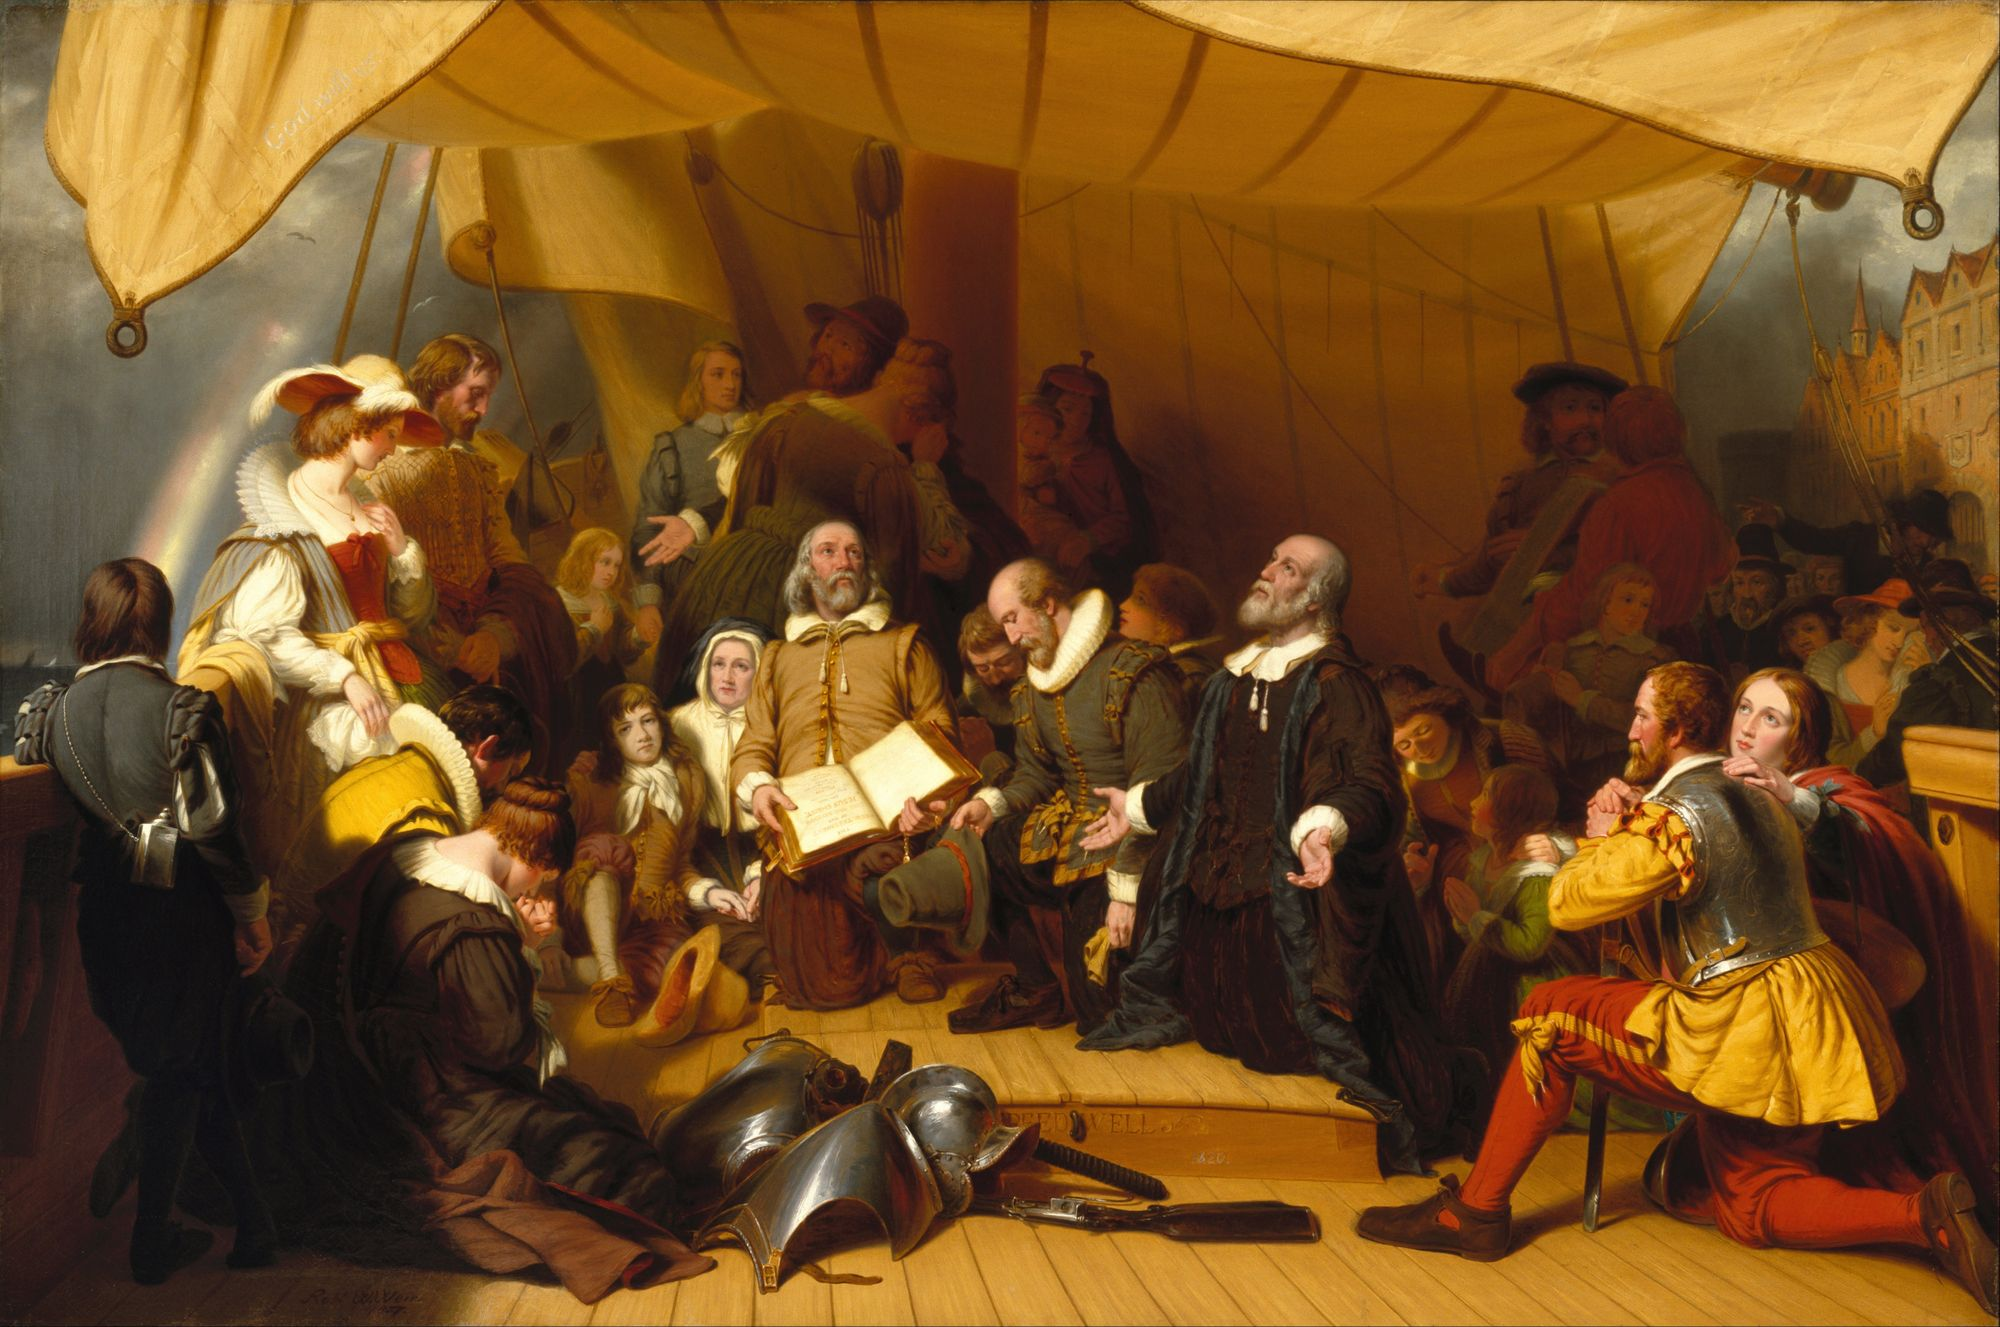 US History myths: puritans in a tent